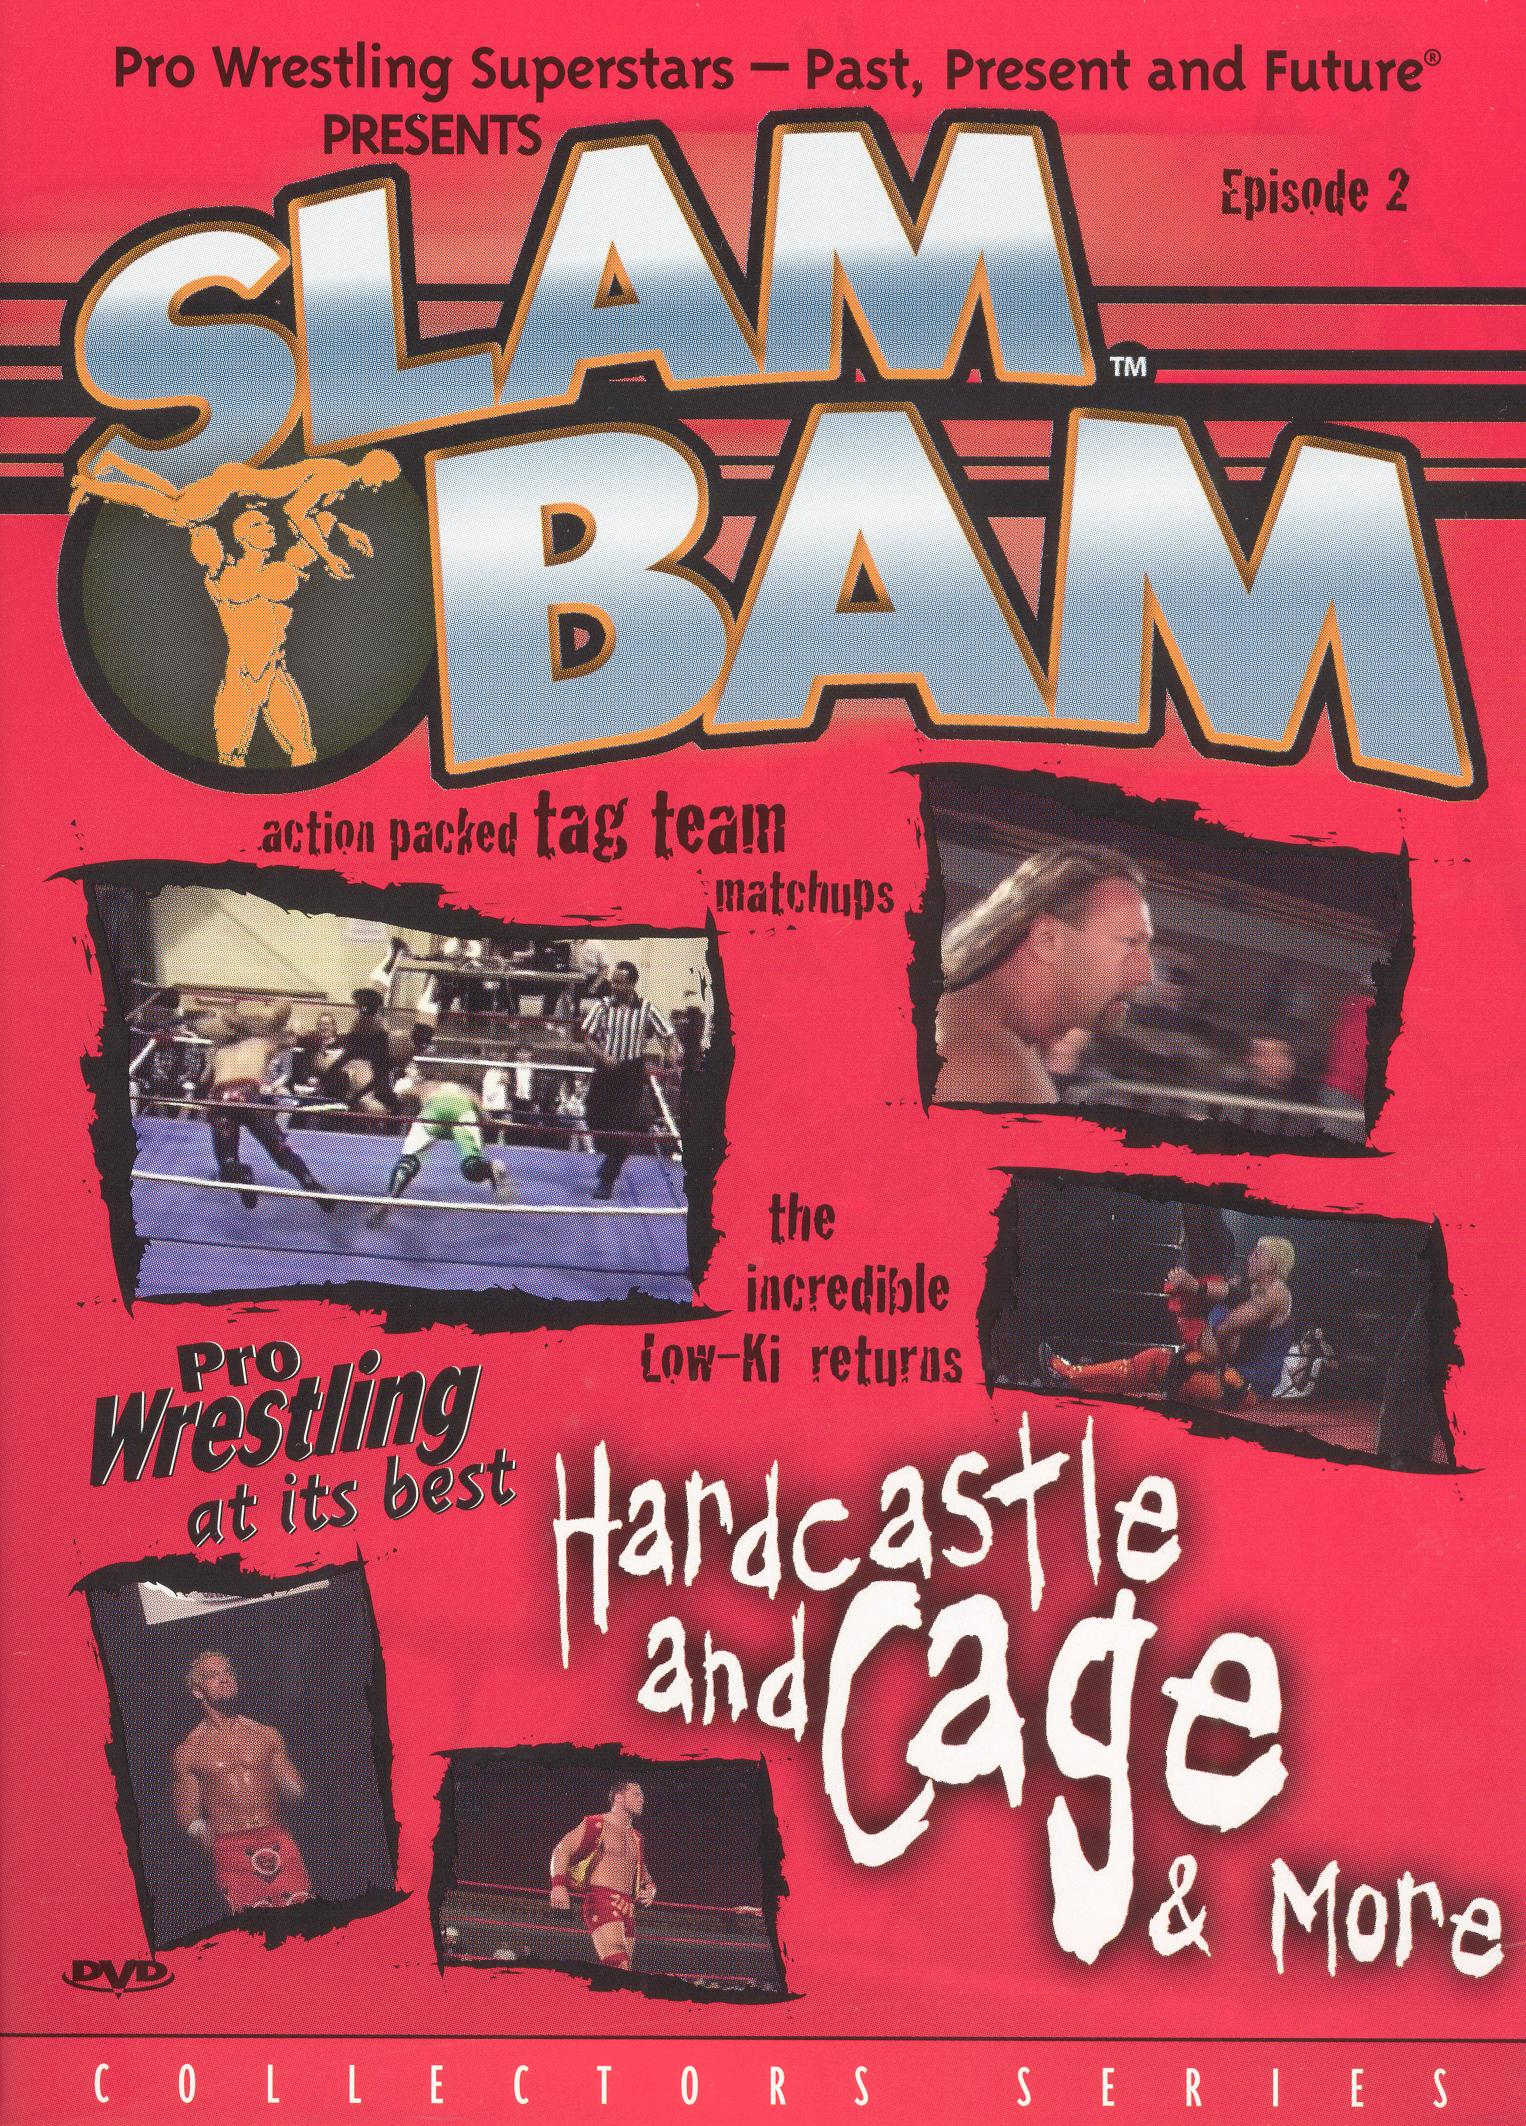 Slam Bam, Vol. 3: Hardcastle and Cage and More